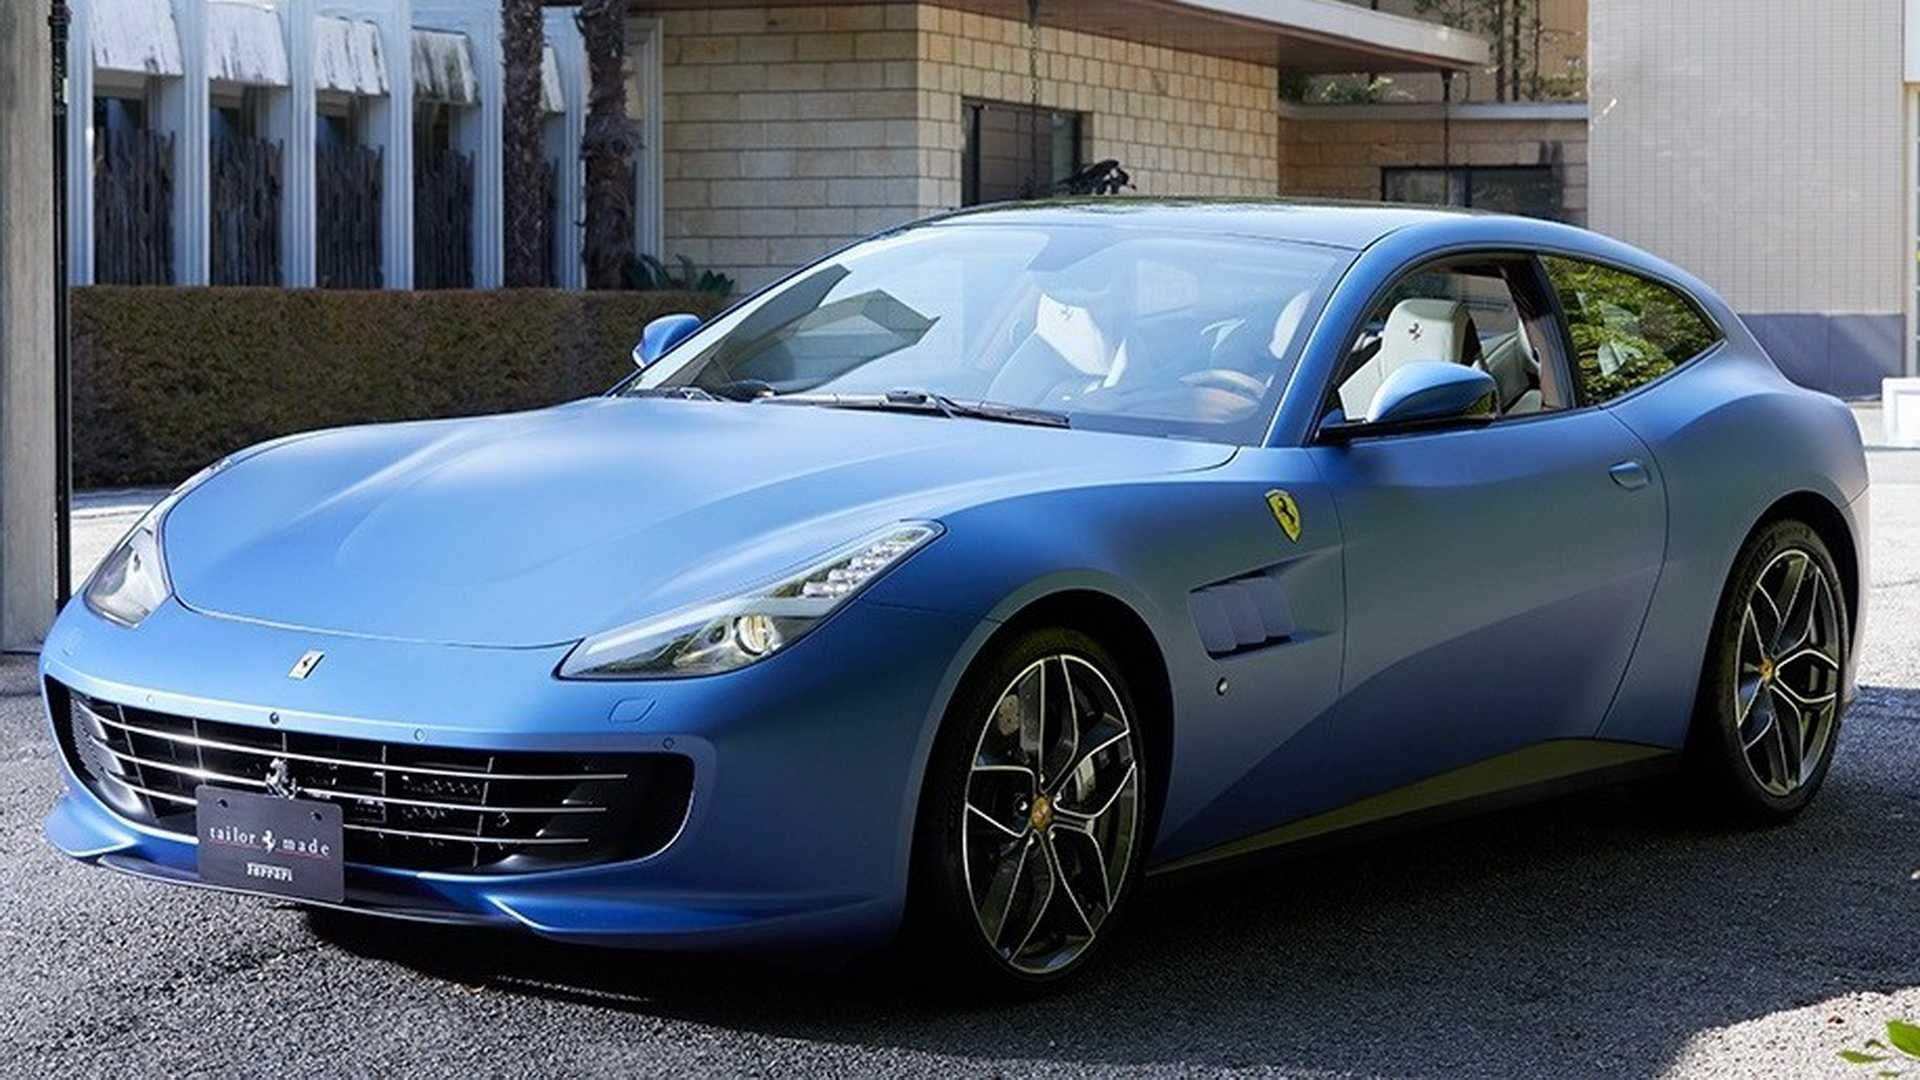 Ferrari Highlights Tailor Made Program With 9 Cars In Japan